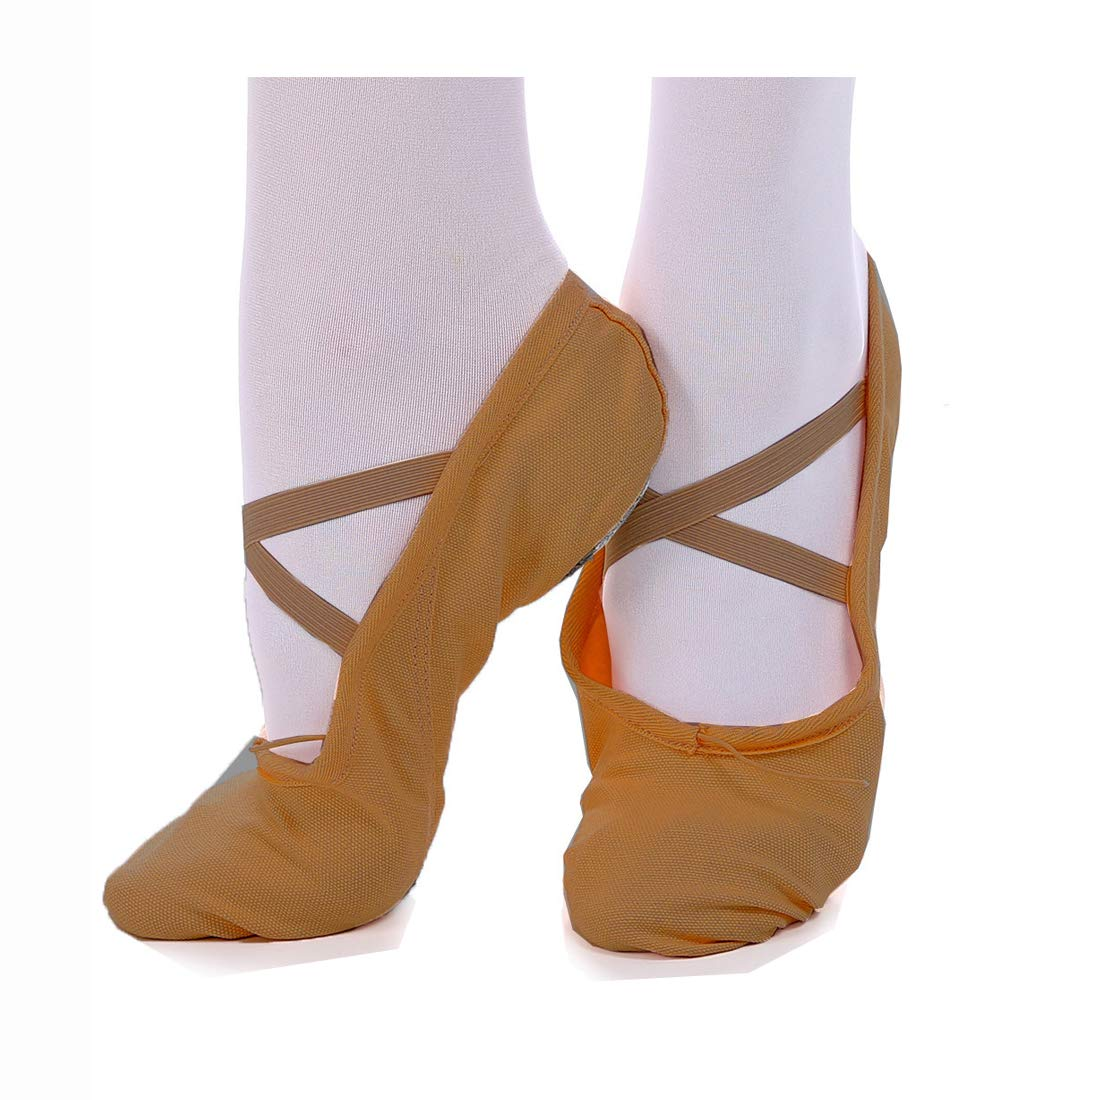 iMucci Girl Coffee Ballet Dance Shoes - Professional Cotton Canvas Upper and Genuine Leather Sole